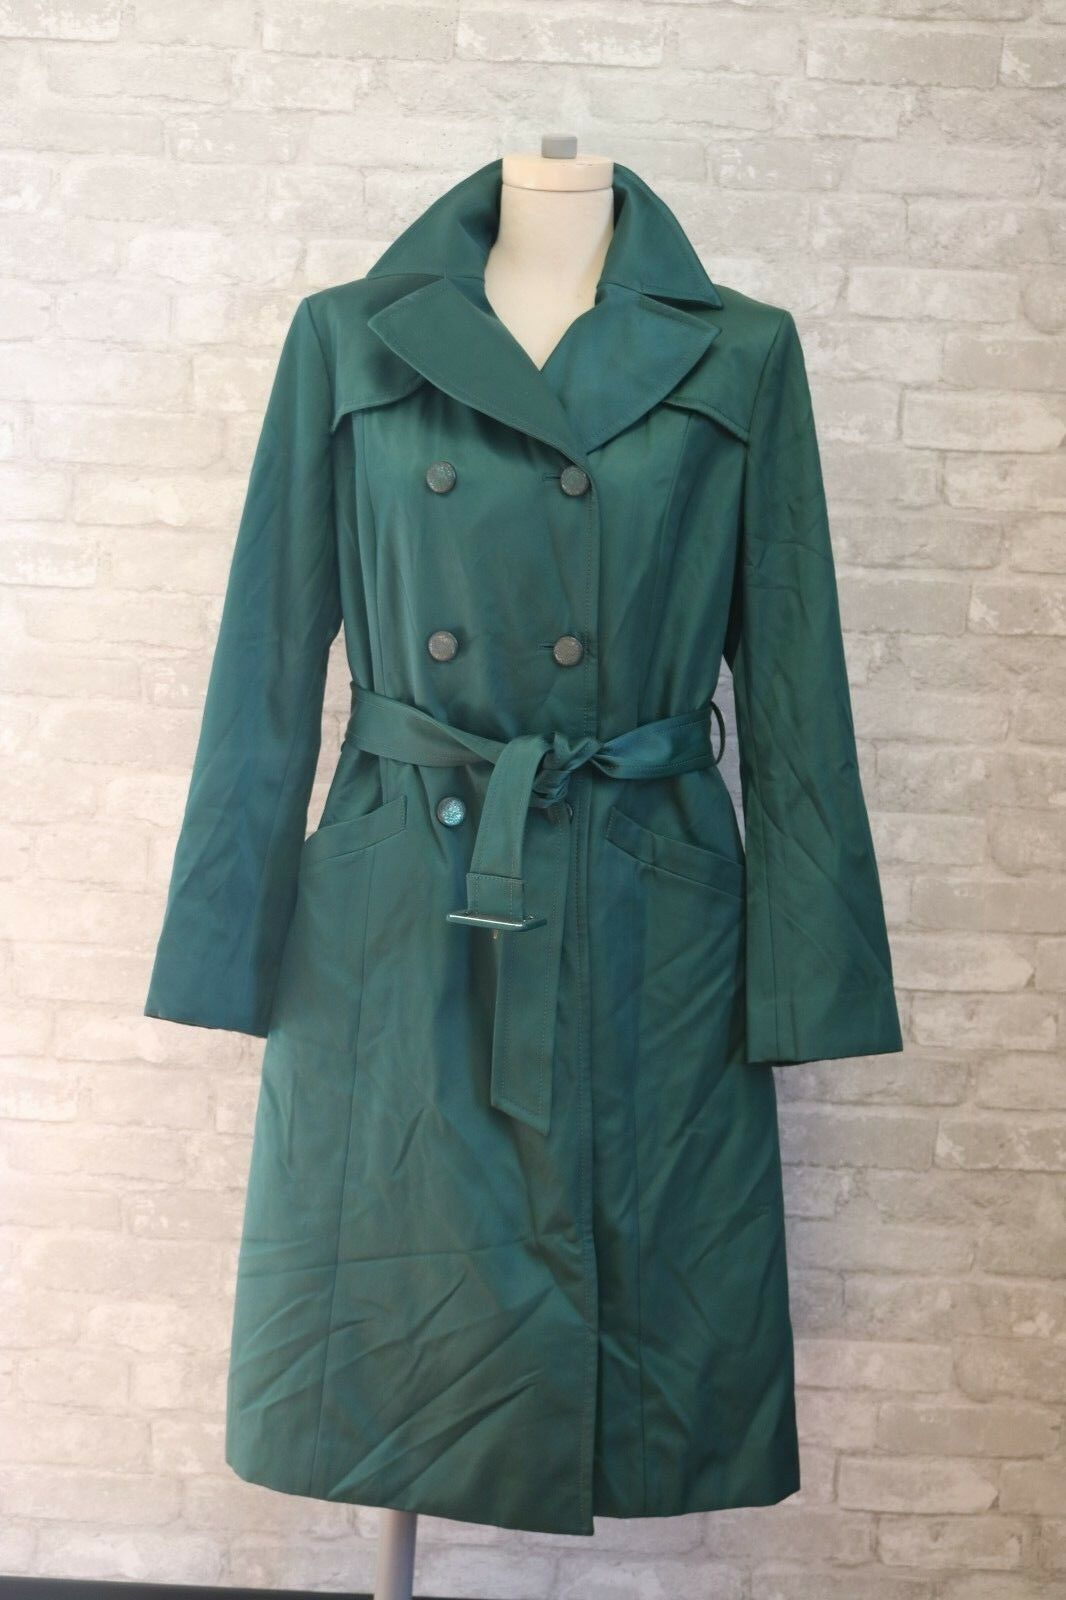 LKNW Cole Haan Collection Emerald Green Trench Coat 12